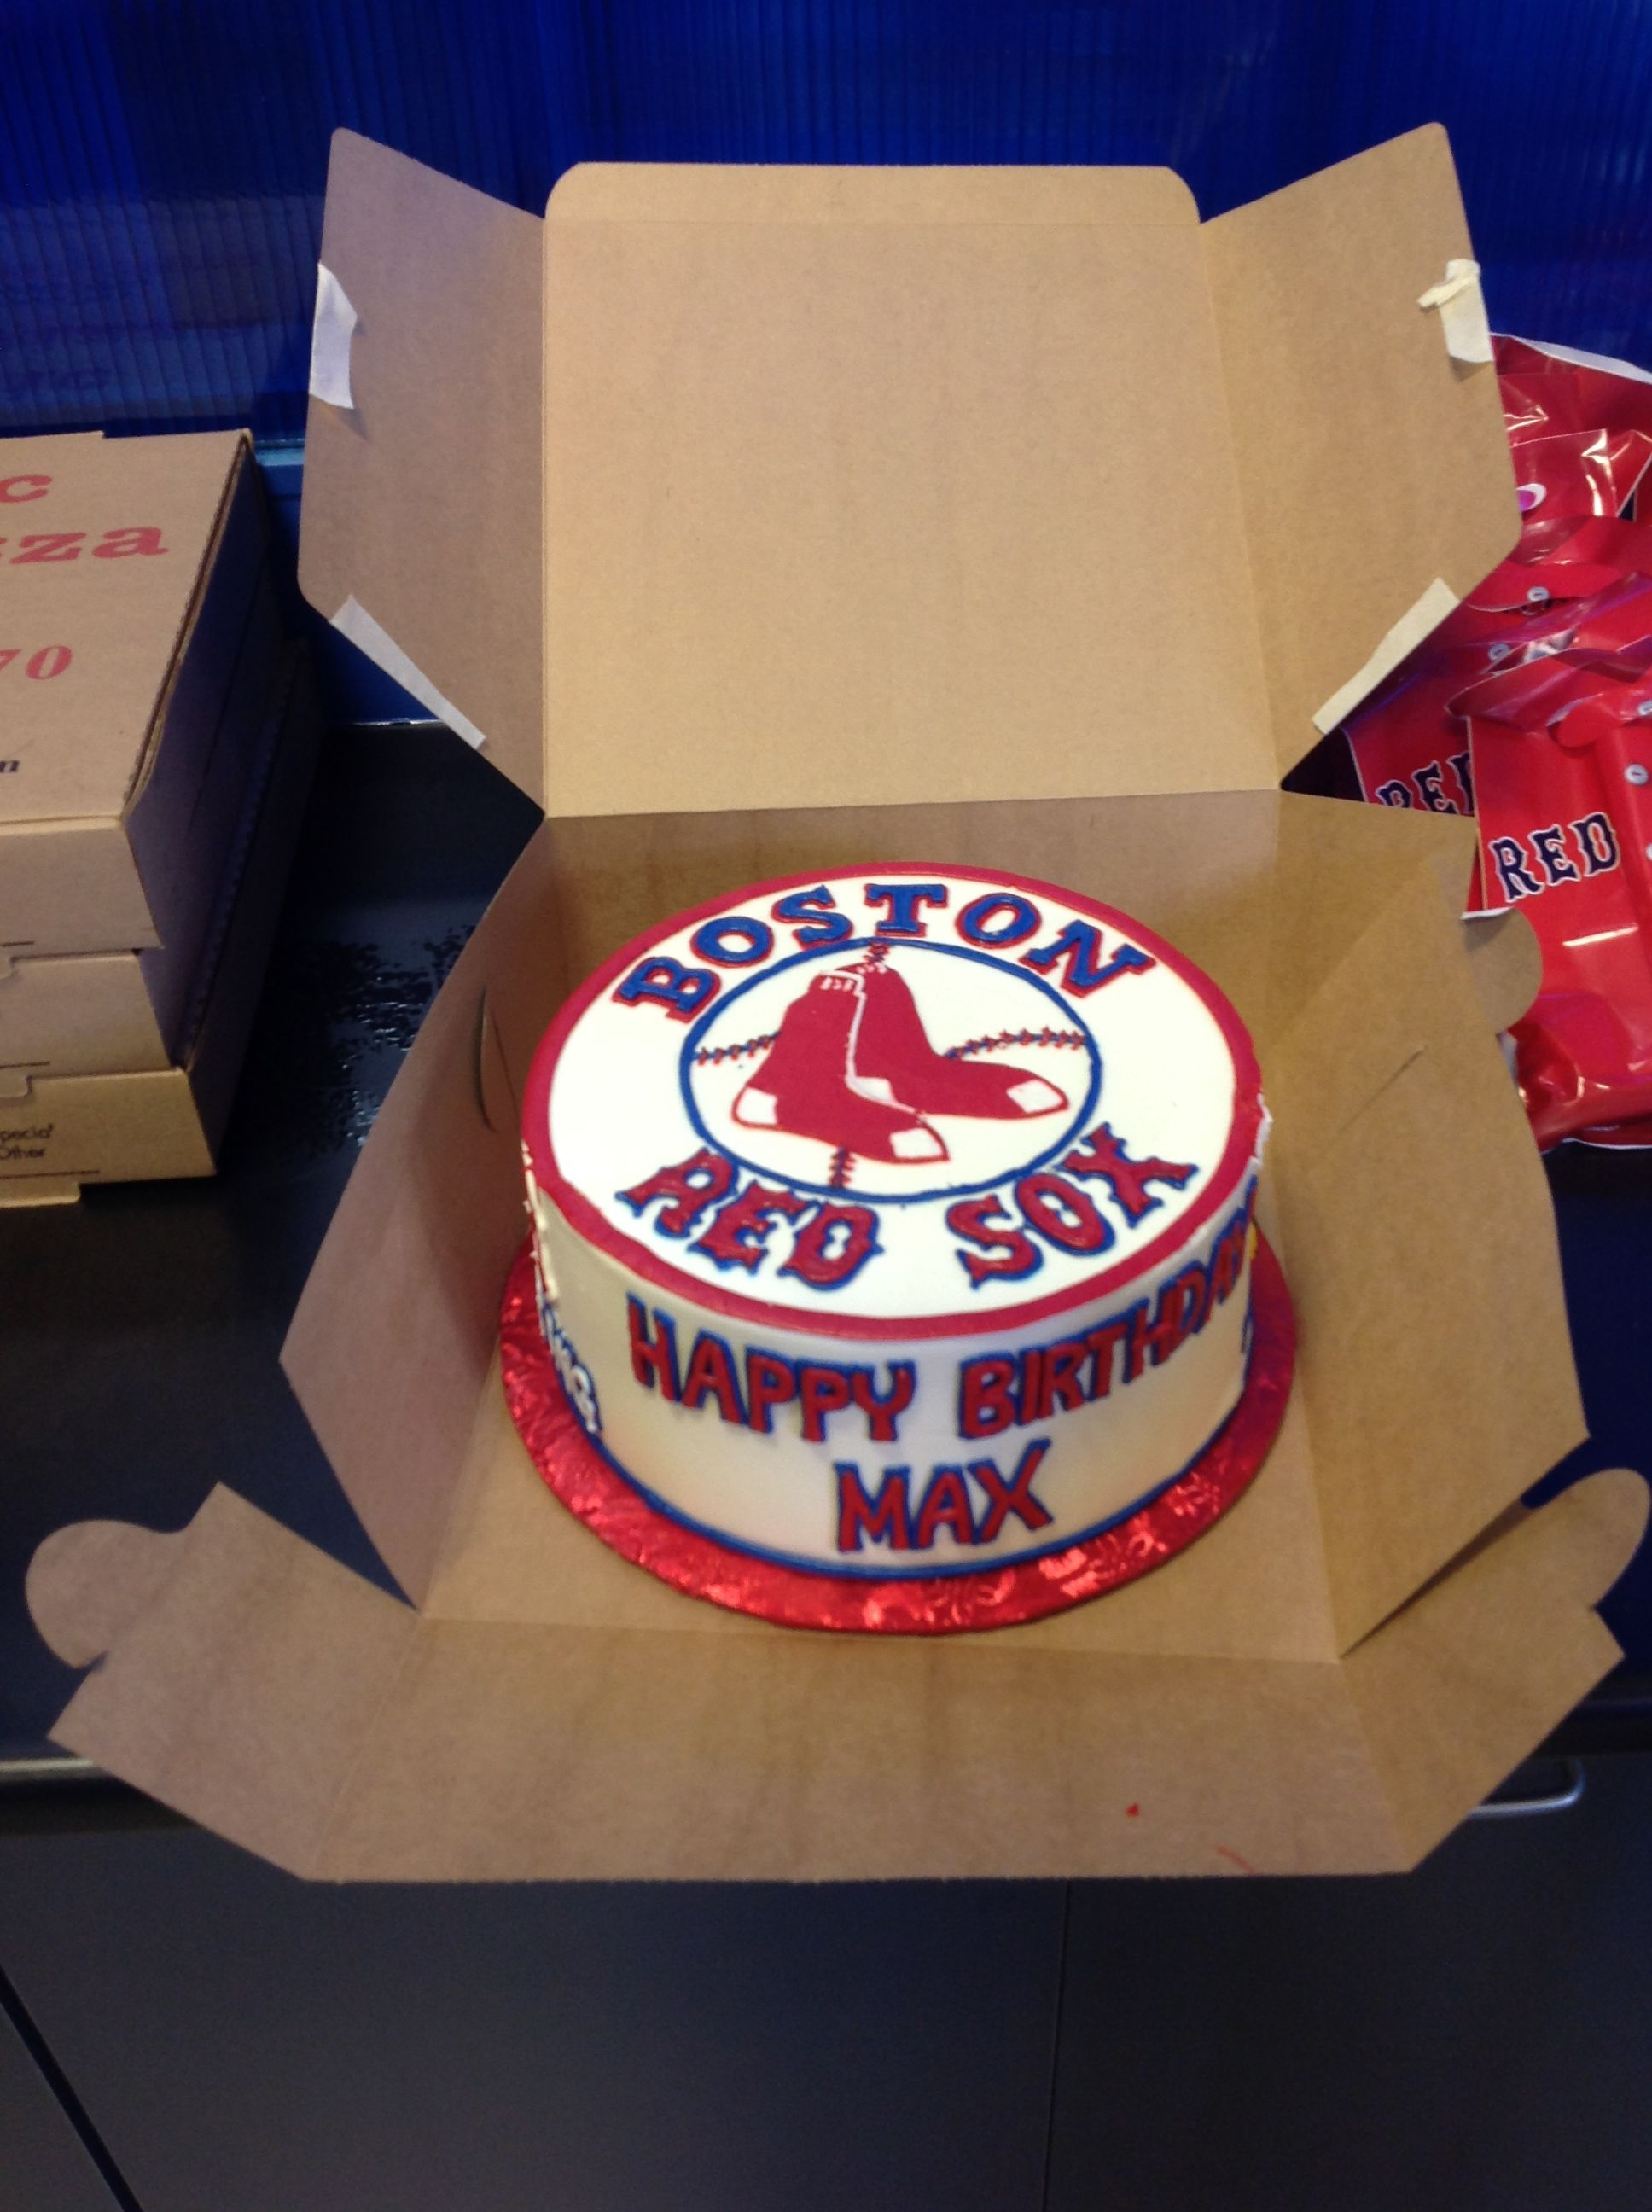 Red Sox Cake At Sky Zone Boston Red Sox Cake Boston Red Sox